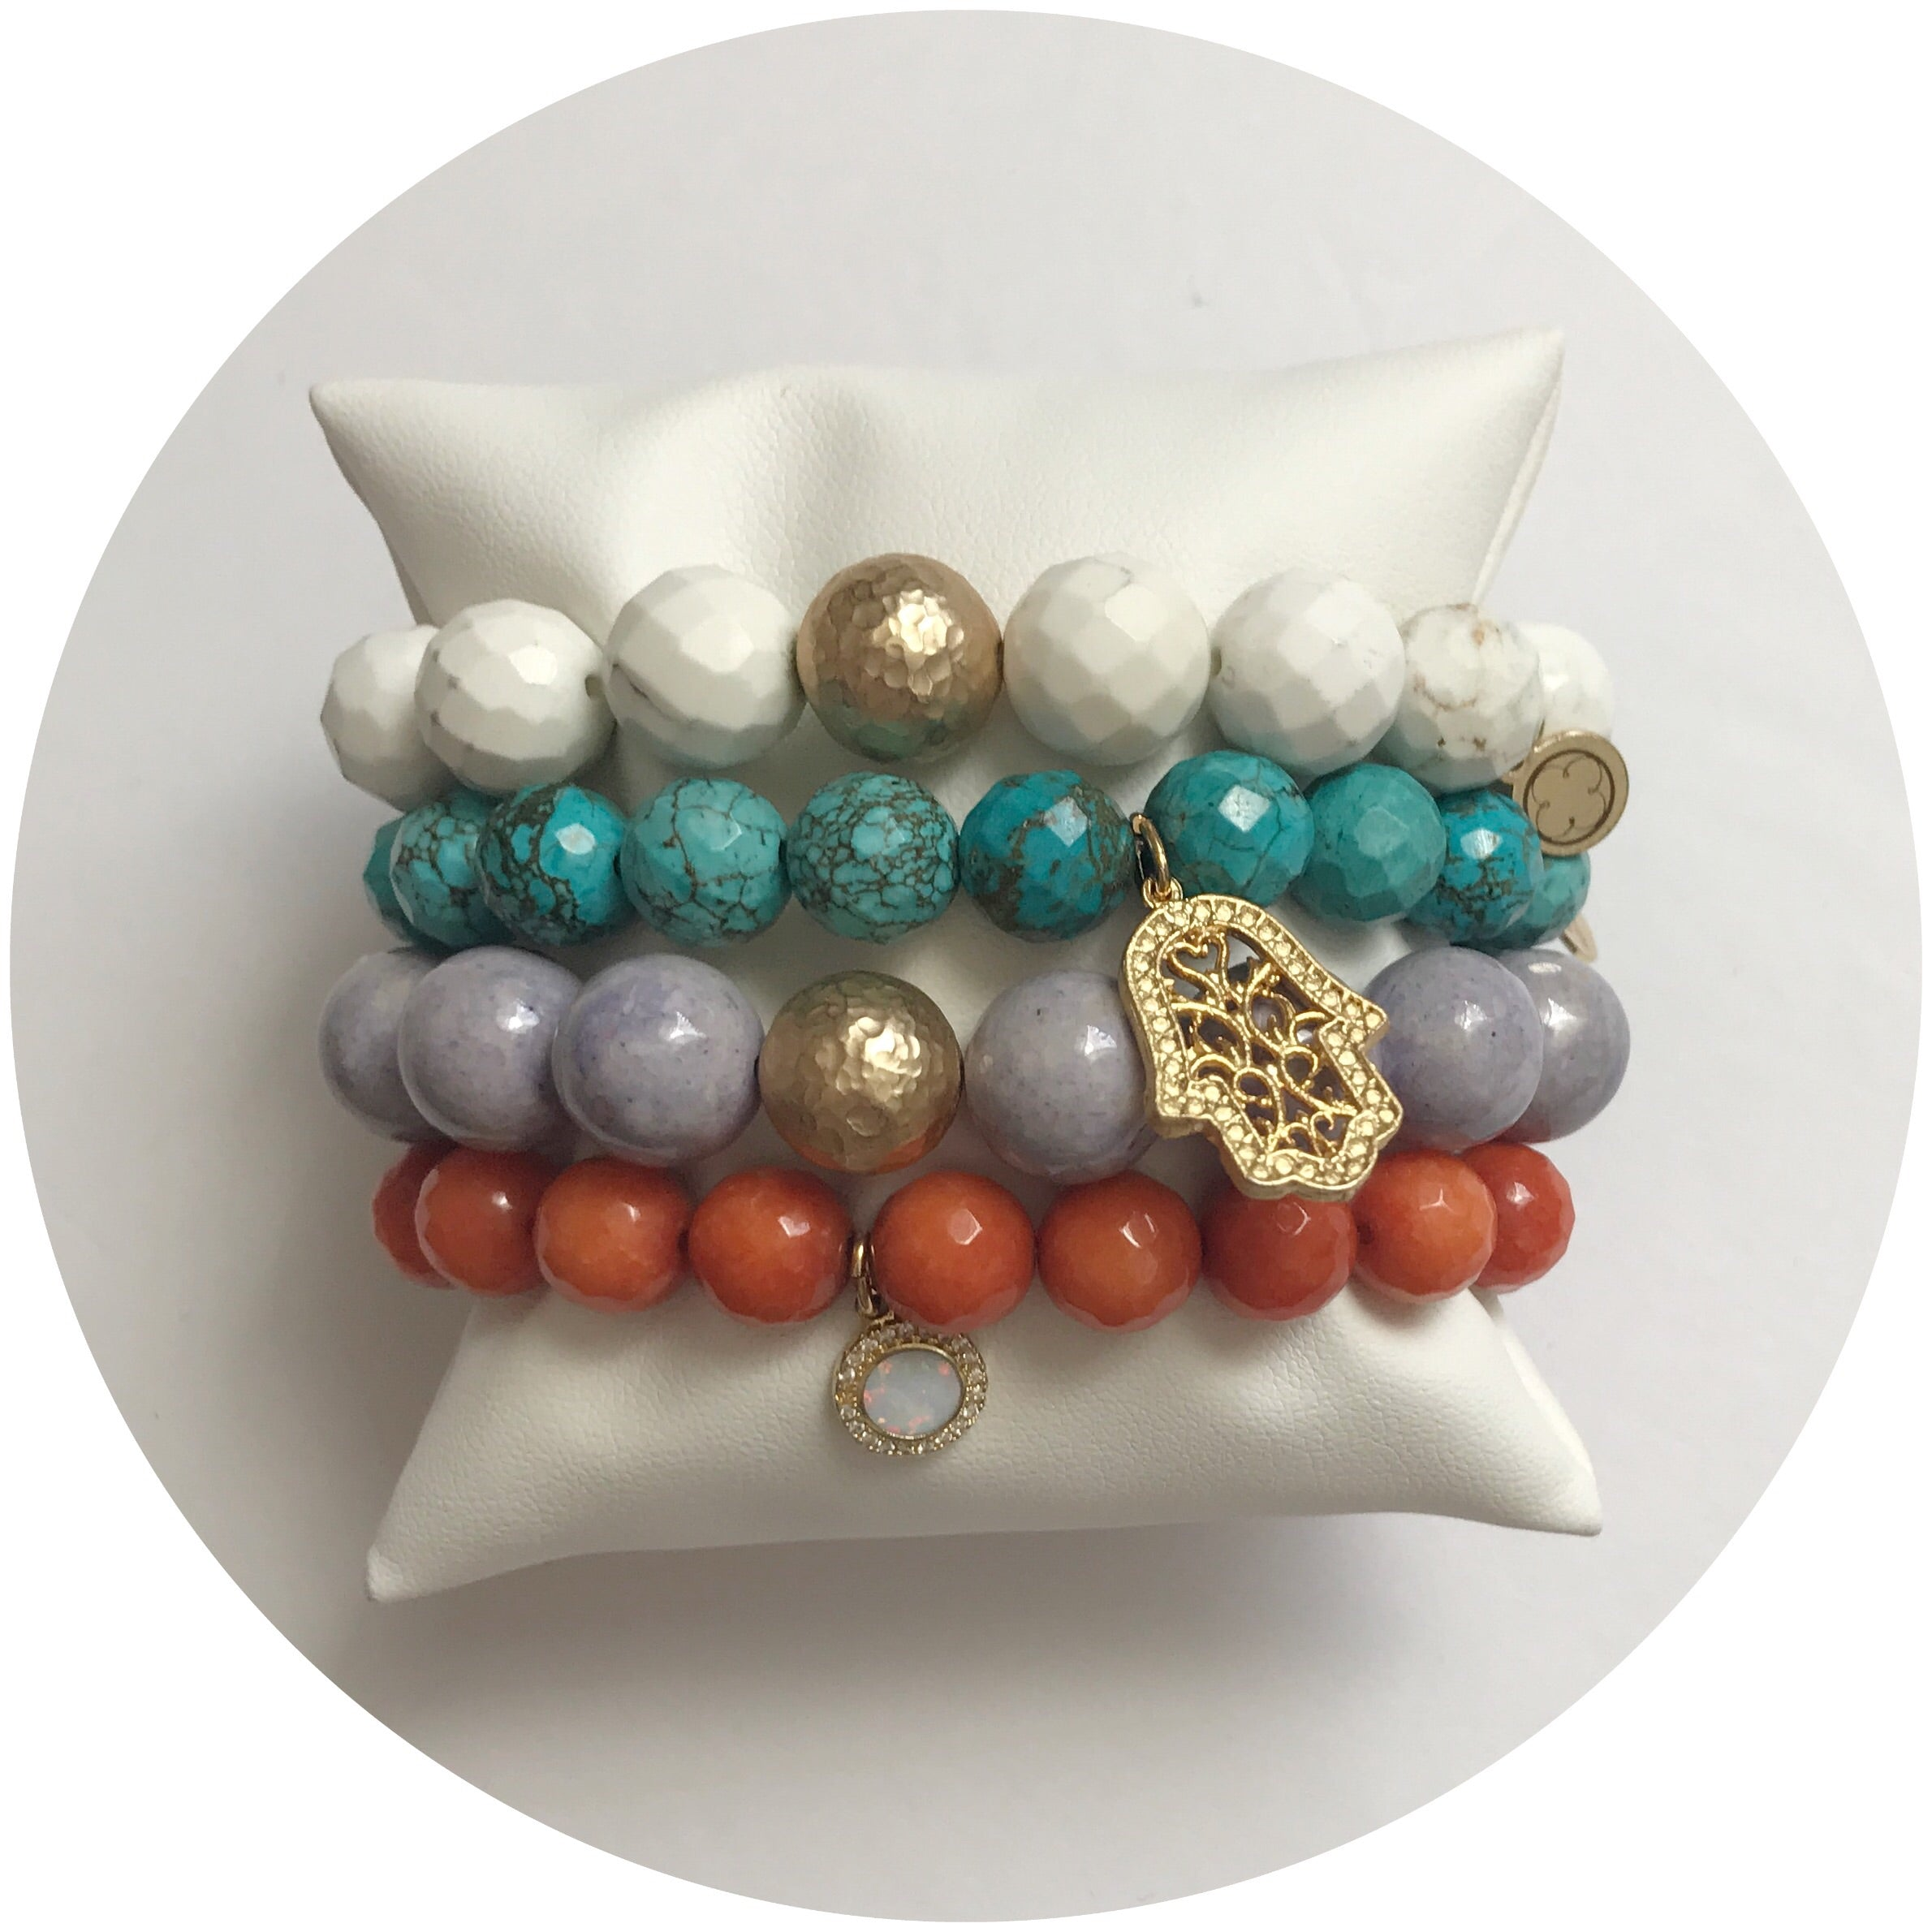 Earth Wind and Fire Armparty - Oriana Lamarca LLC